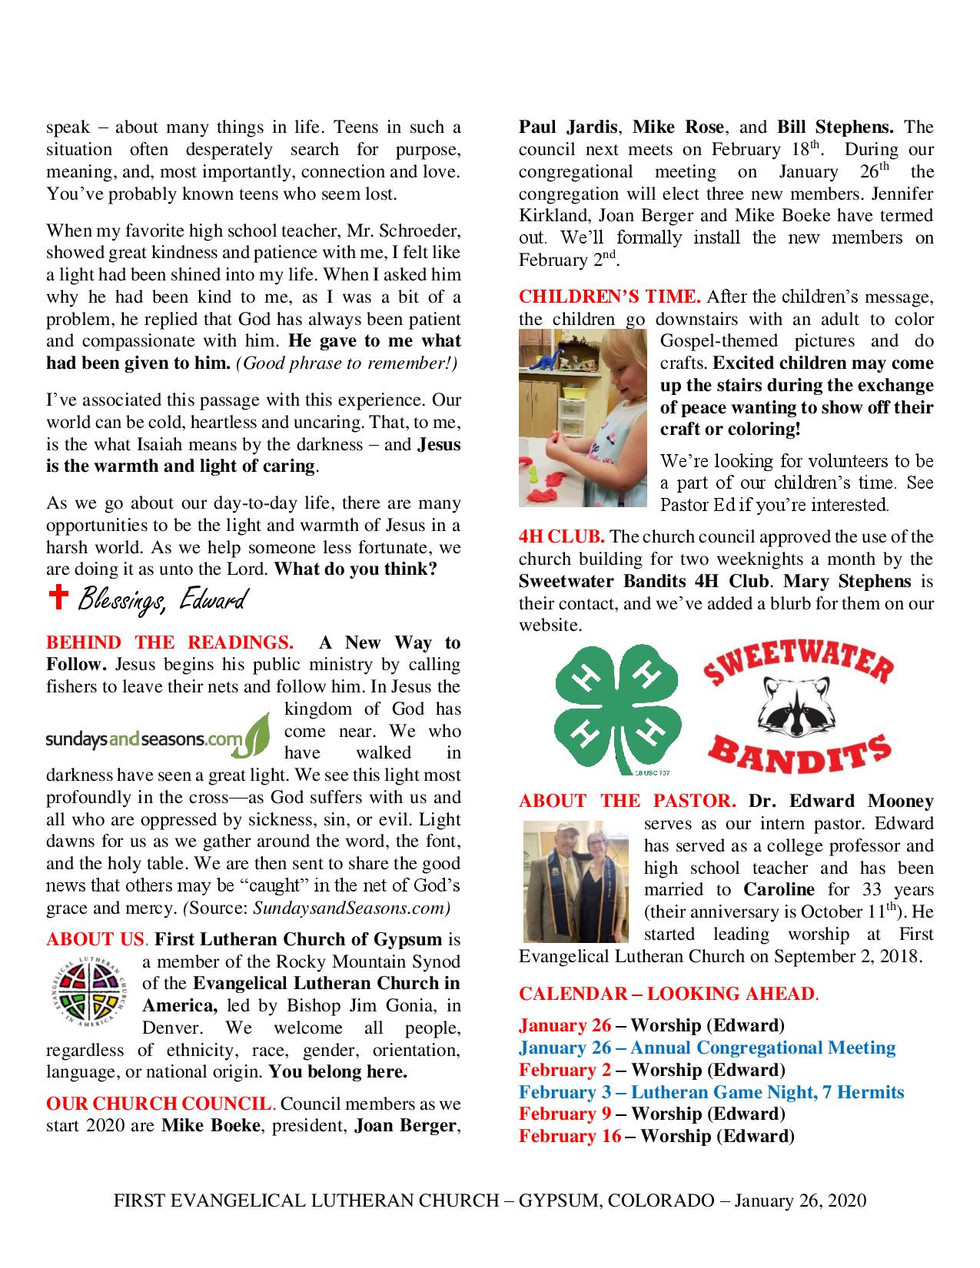 Newsletter, January 26, 2020, page 2